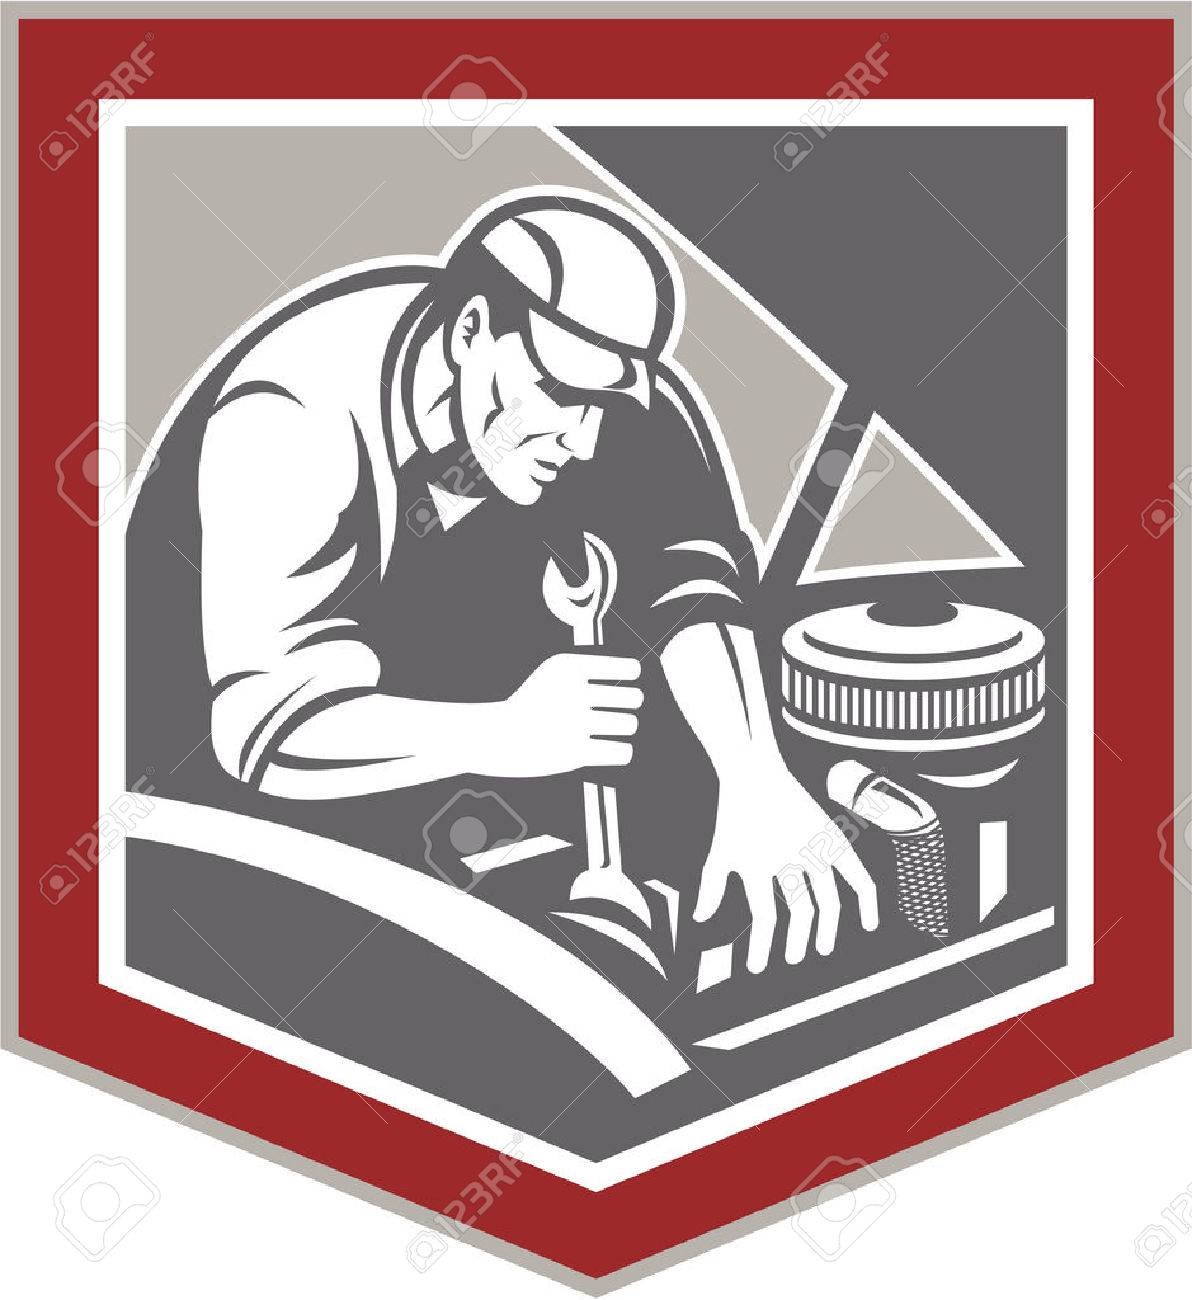 Illustration of a car mechanic repairing automobile vehicle using spanner wrench set inside shield crest shape done in retro woodcut style style. Stock Vector - 27235990